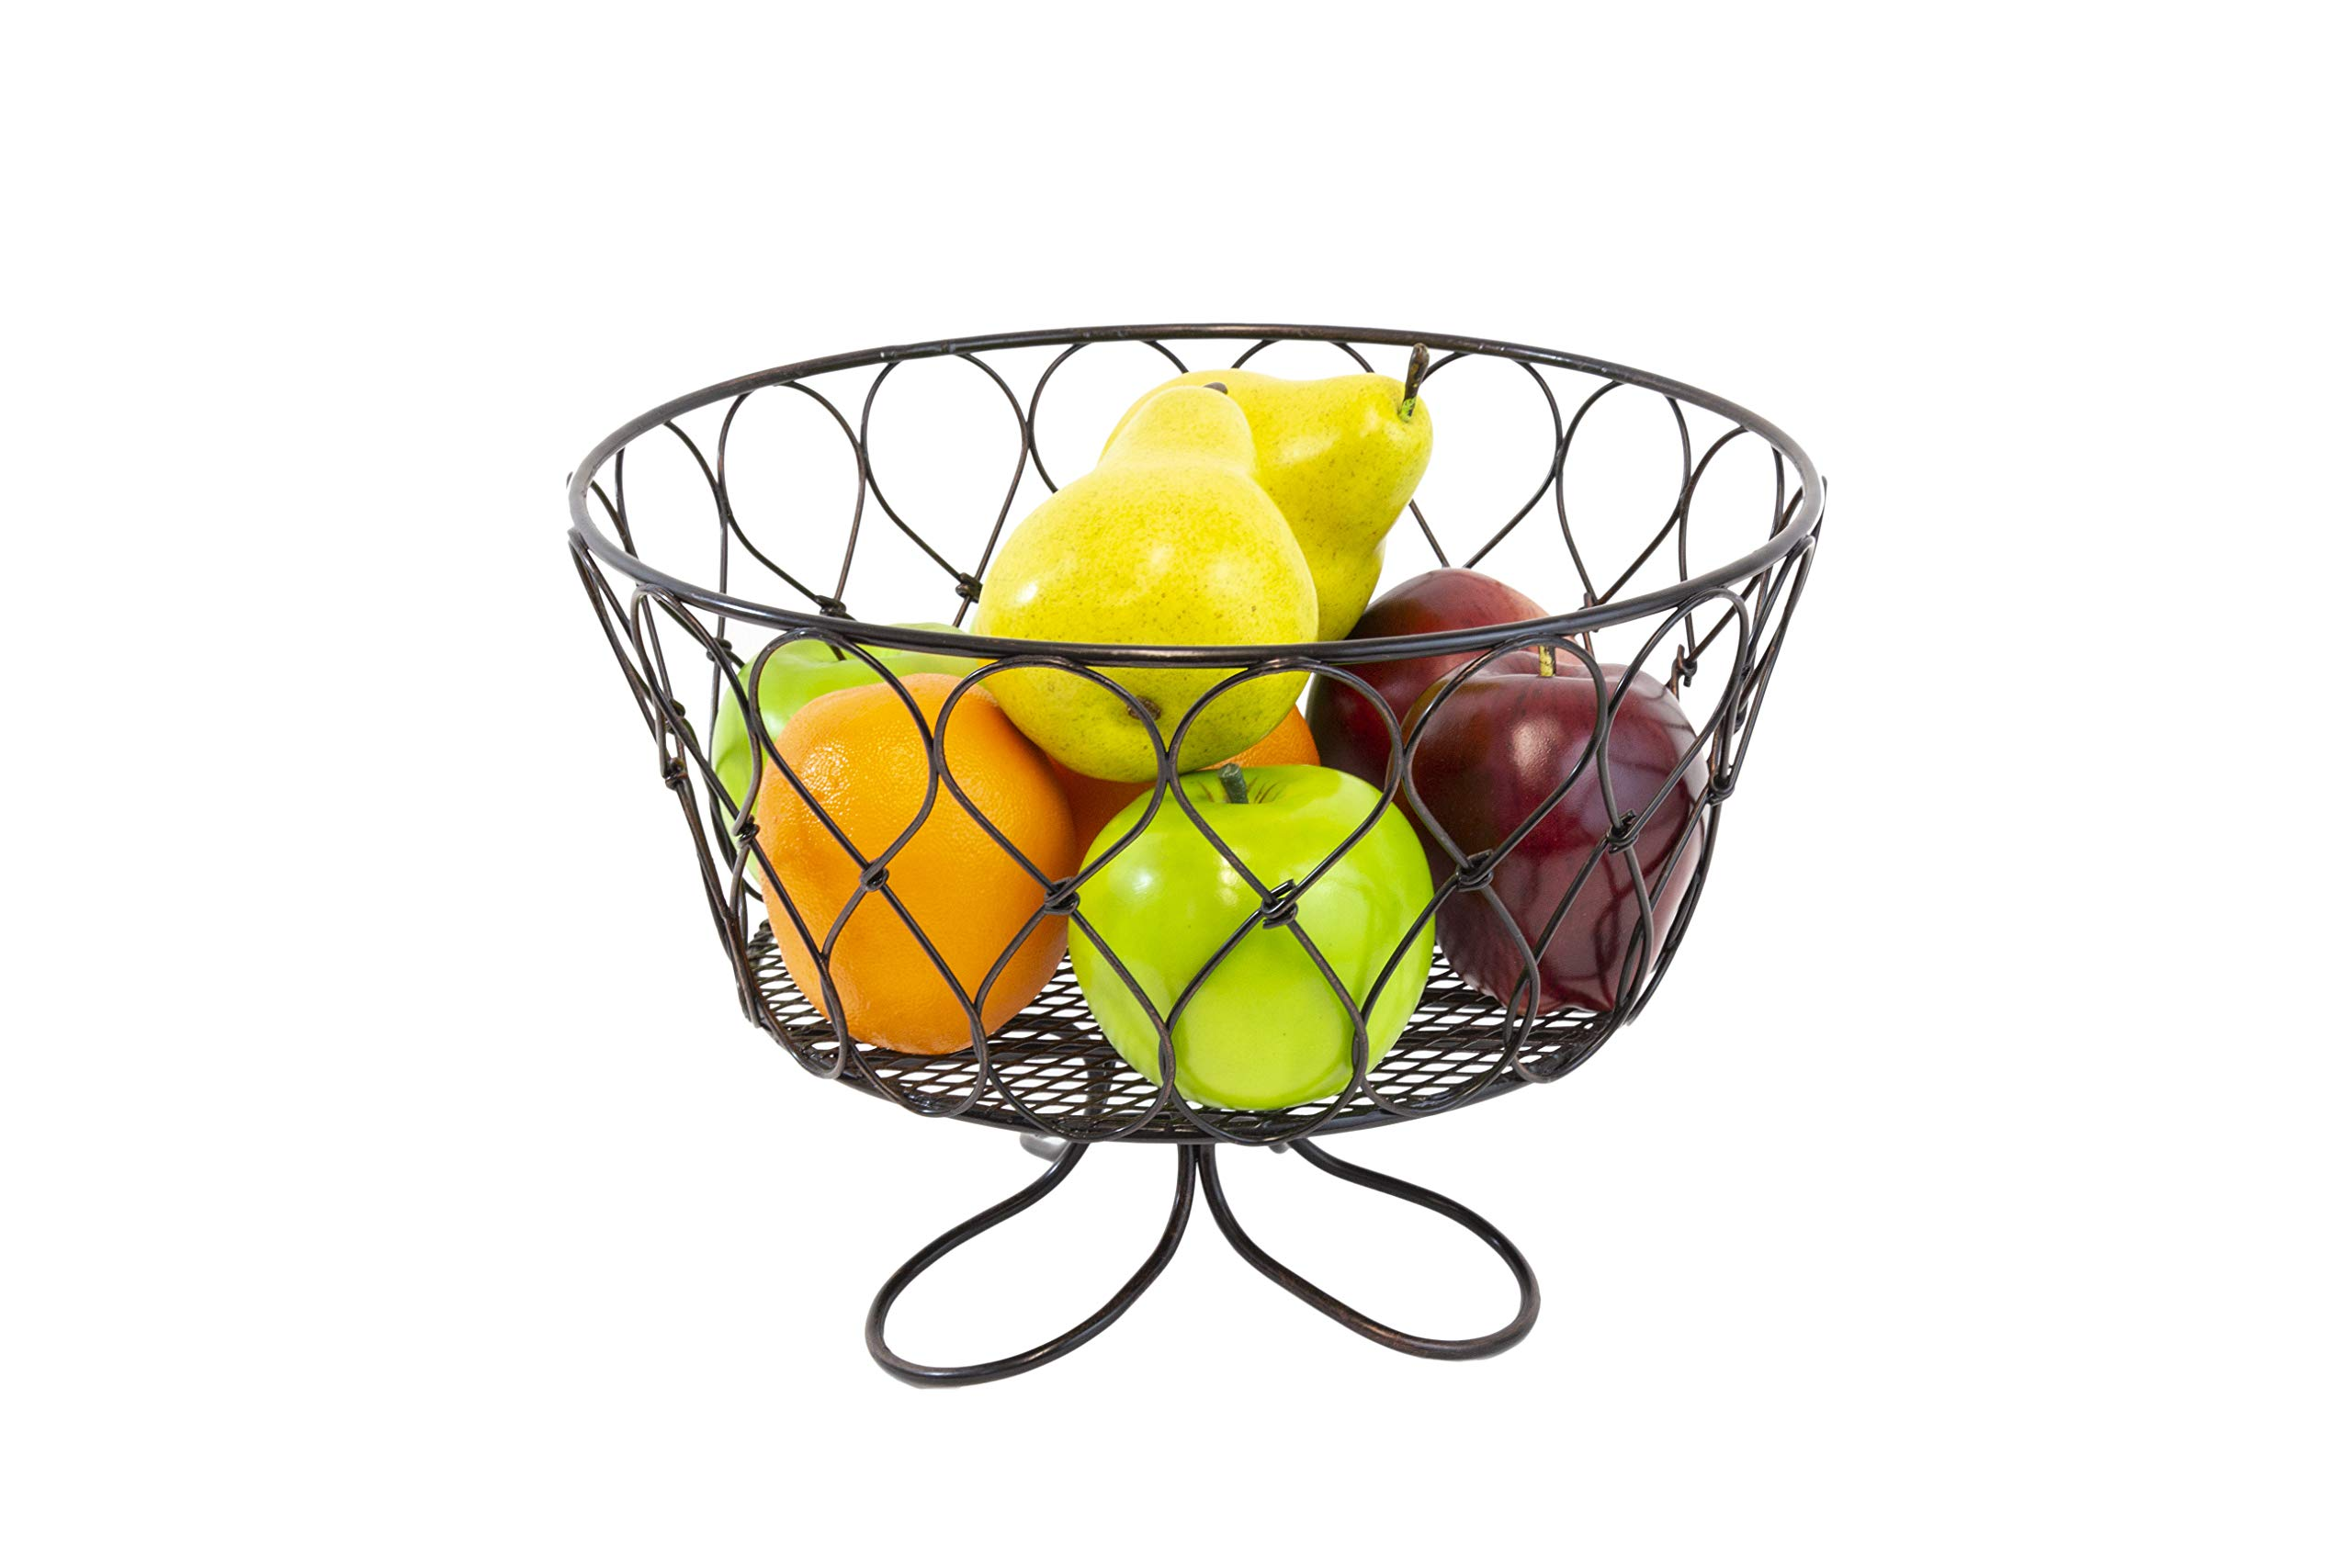 FRUIT BOWL , KITCHEN BASKET / STAND : Loop Twist Collection in Gunmetal; Inspired Living By Mesa ; Centerpiece Bowl